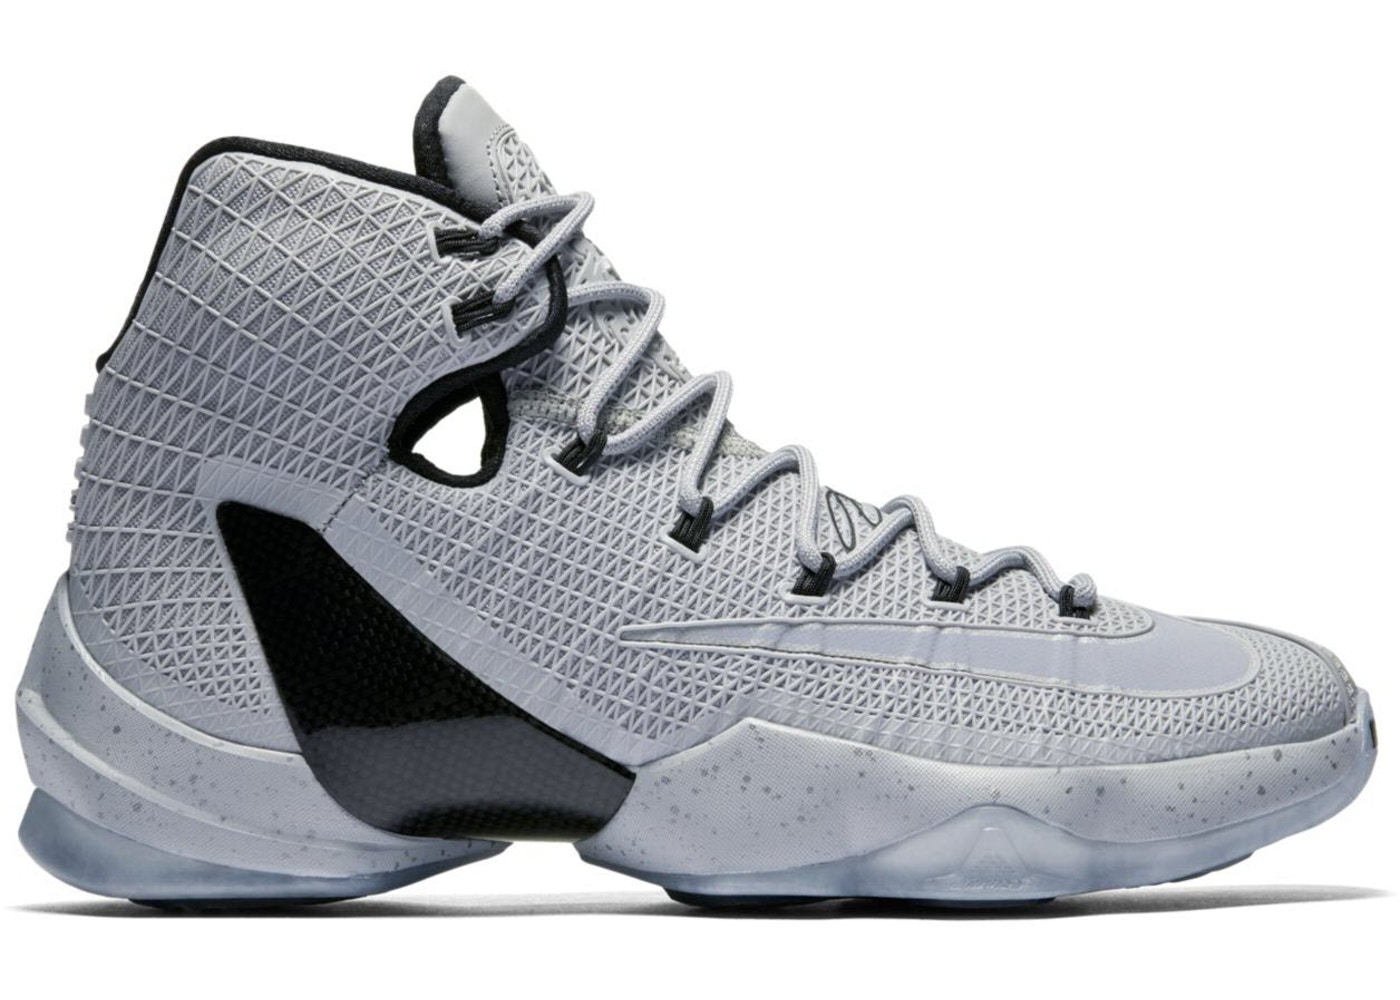 outlet store fa6f4 f83bd Buy Nike LeBron 13 Shoes & Deadstock Sneakers